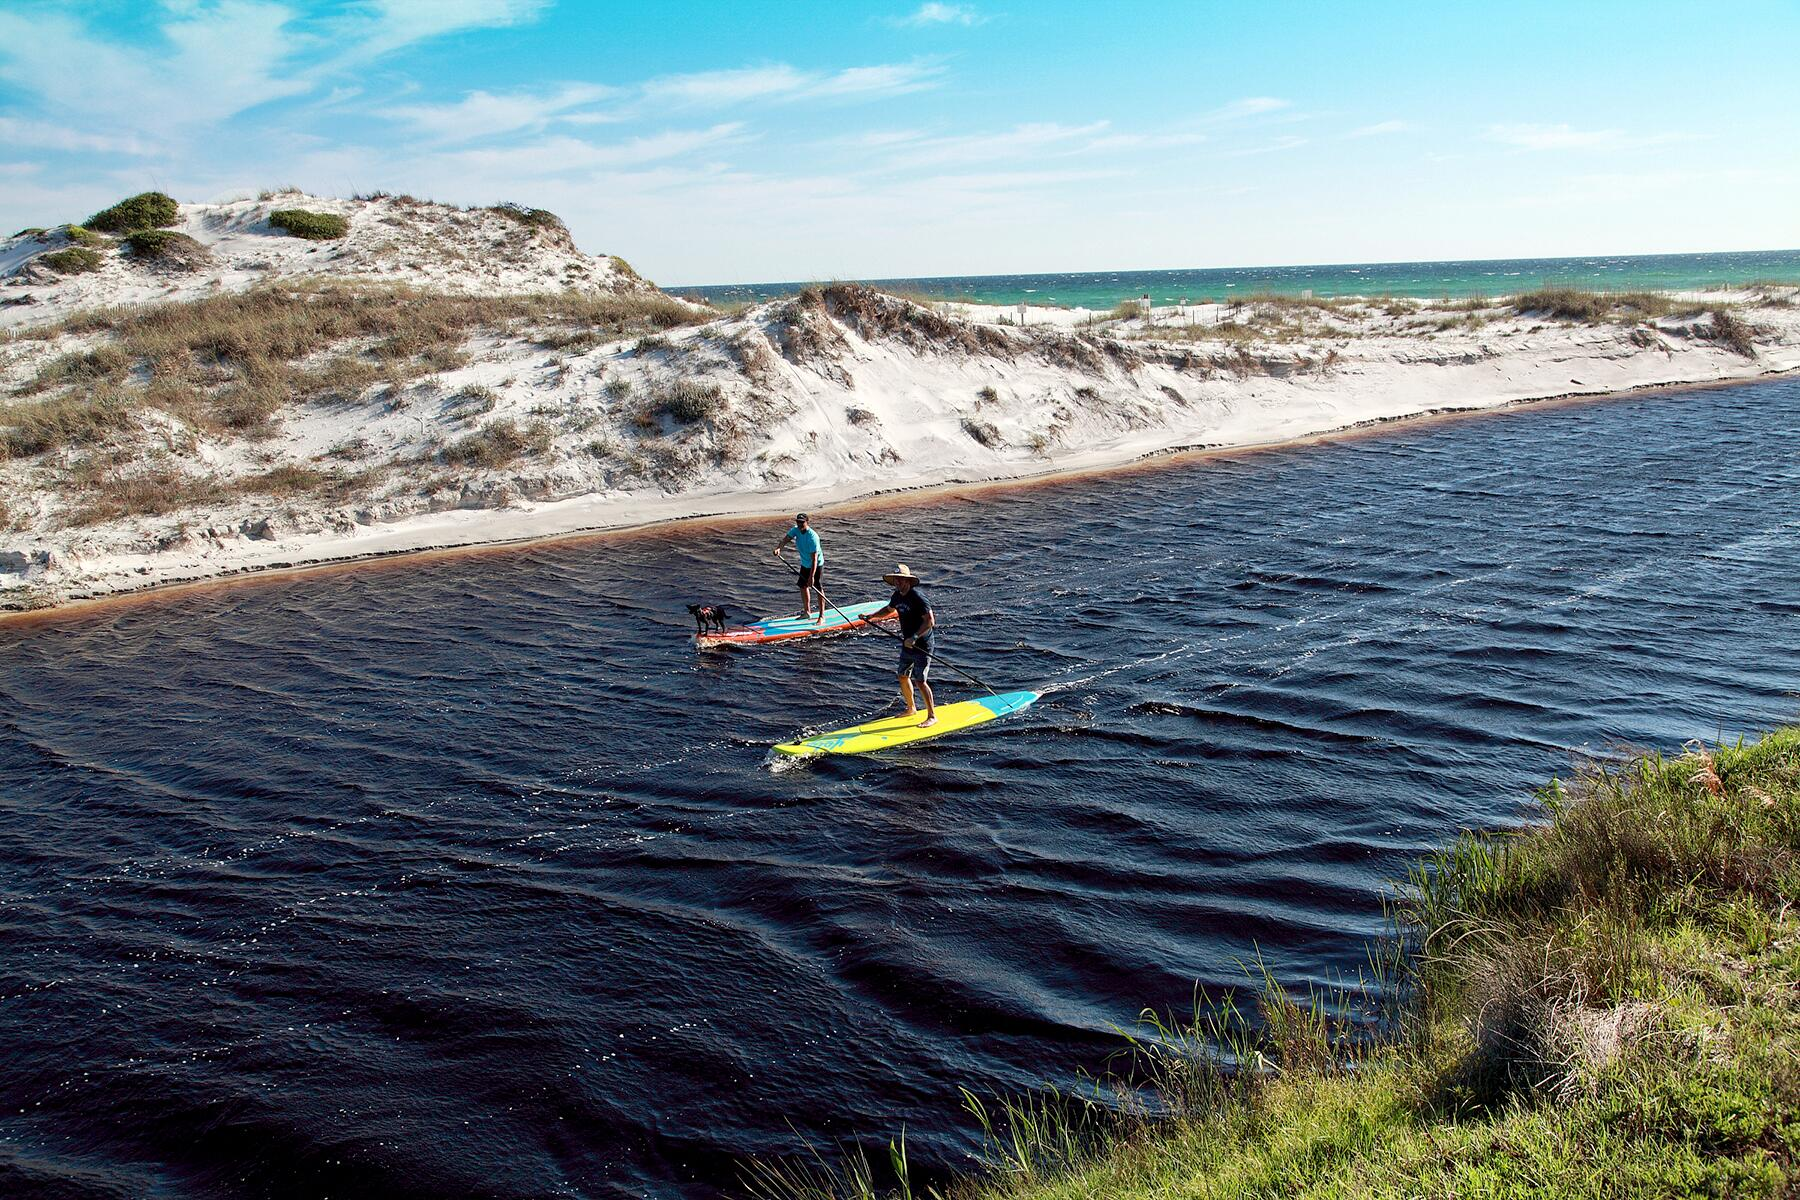 The Best Road Trip Stops Along The Florida Panhandle